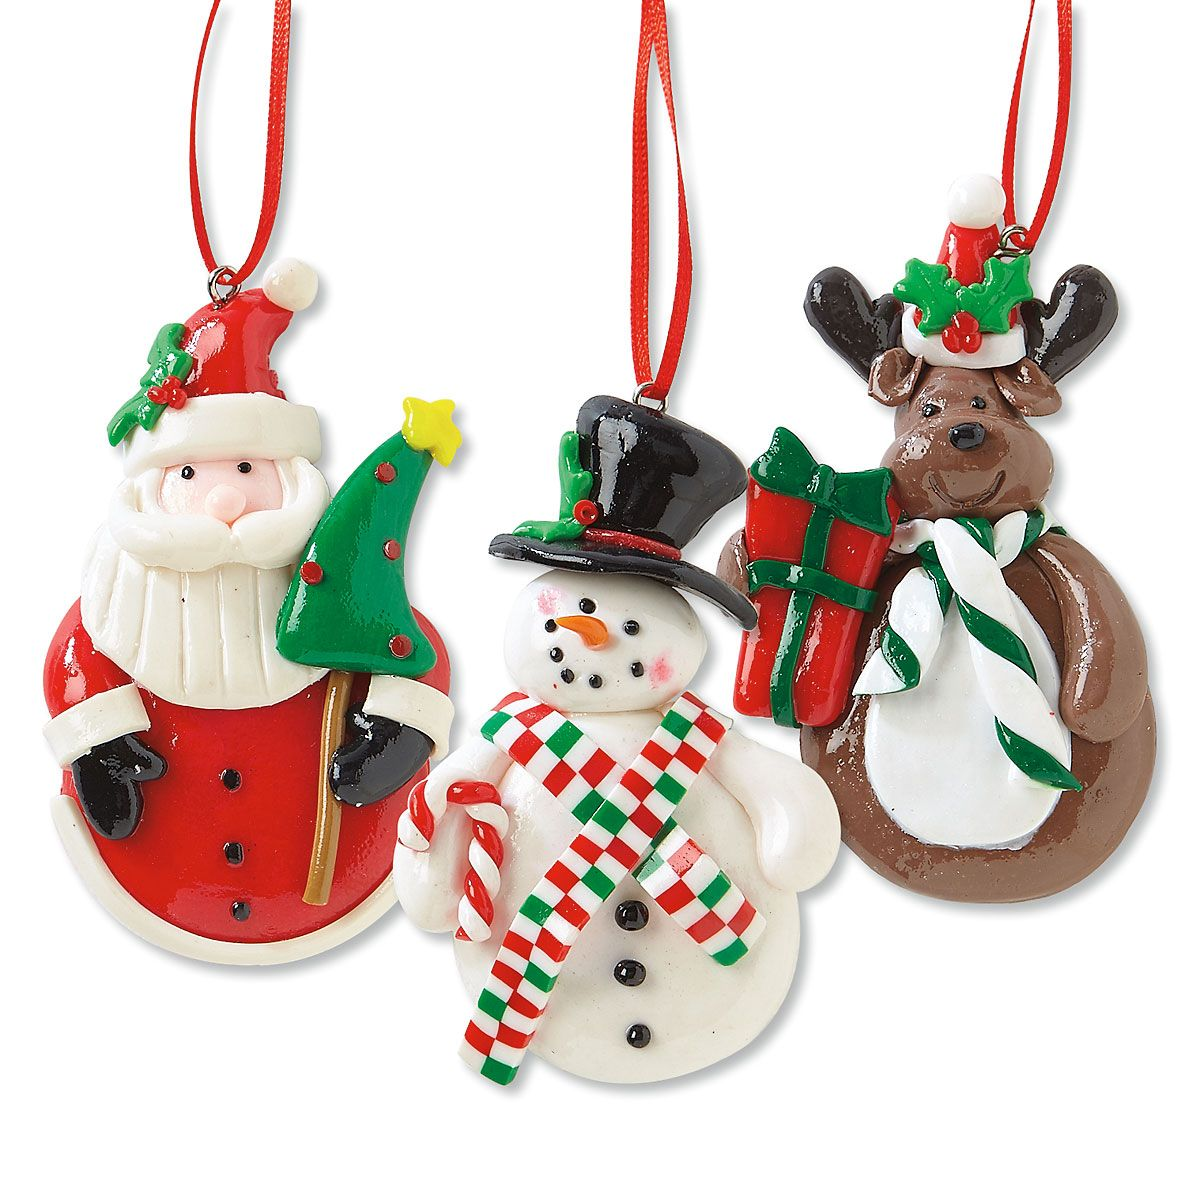 Christmas character ornament current catalog for Christmas ornaments sale